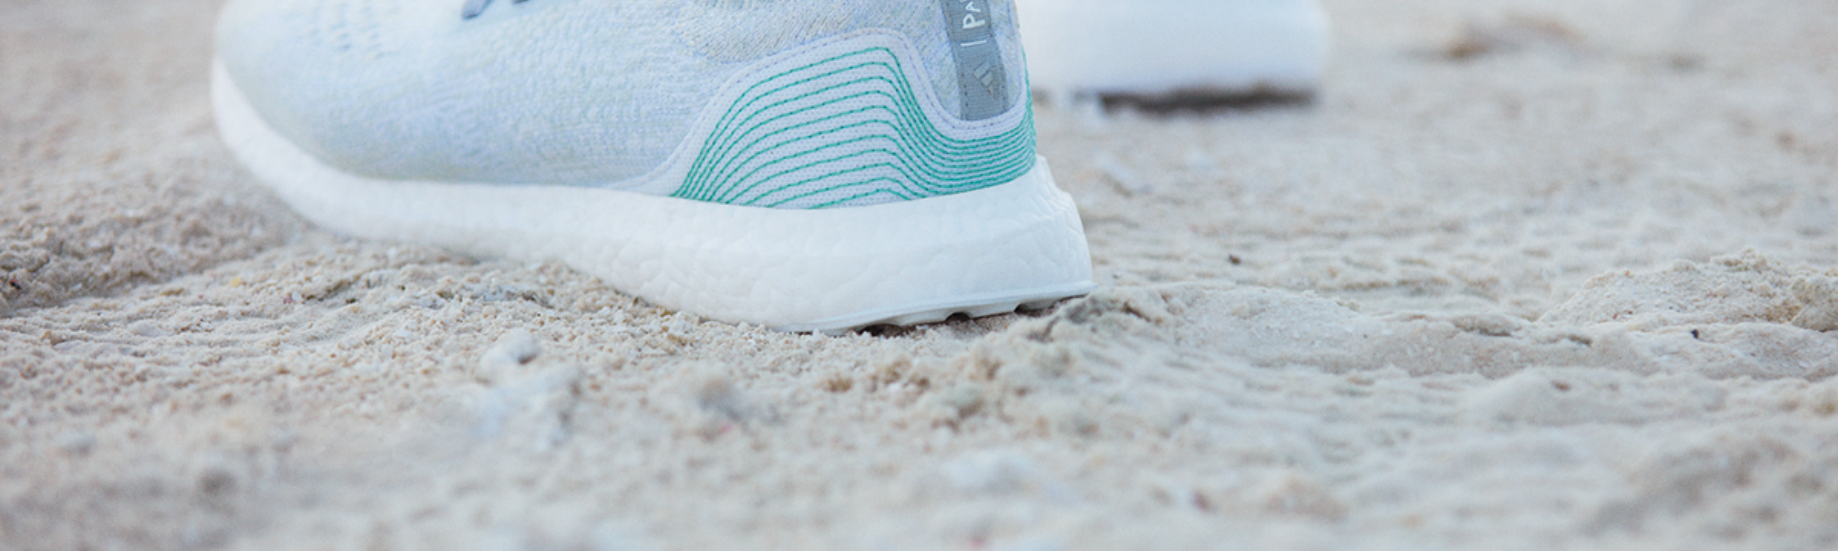 417f085c5 My shoes are made from recycled ocean trash. Does the planet care?